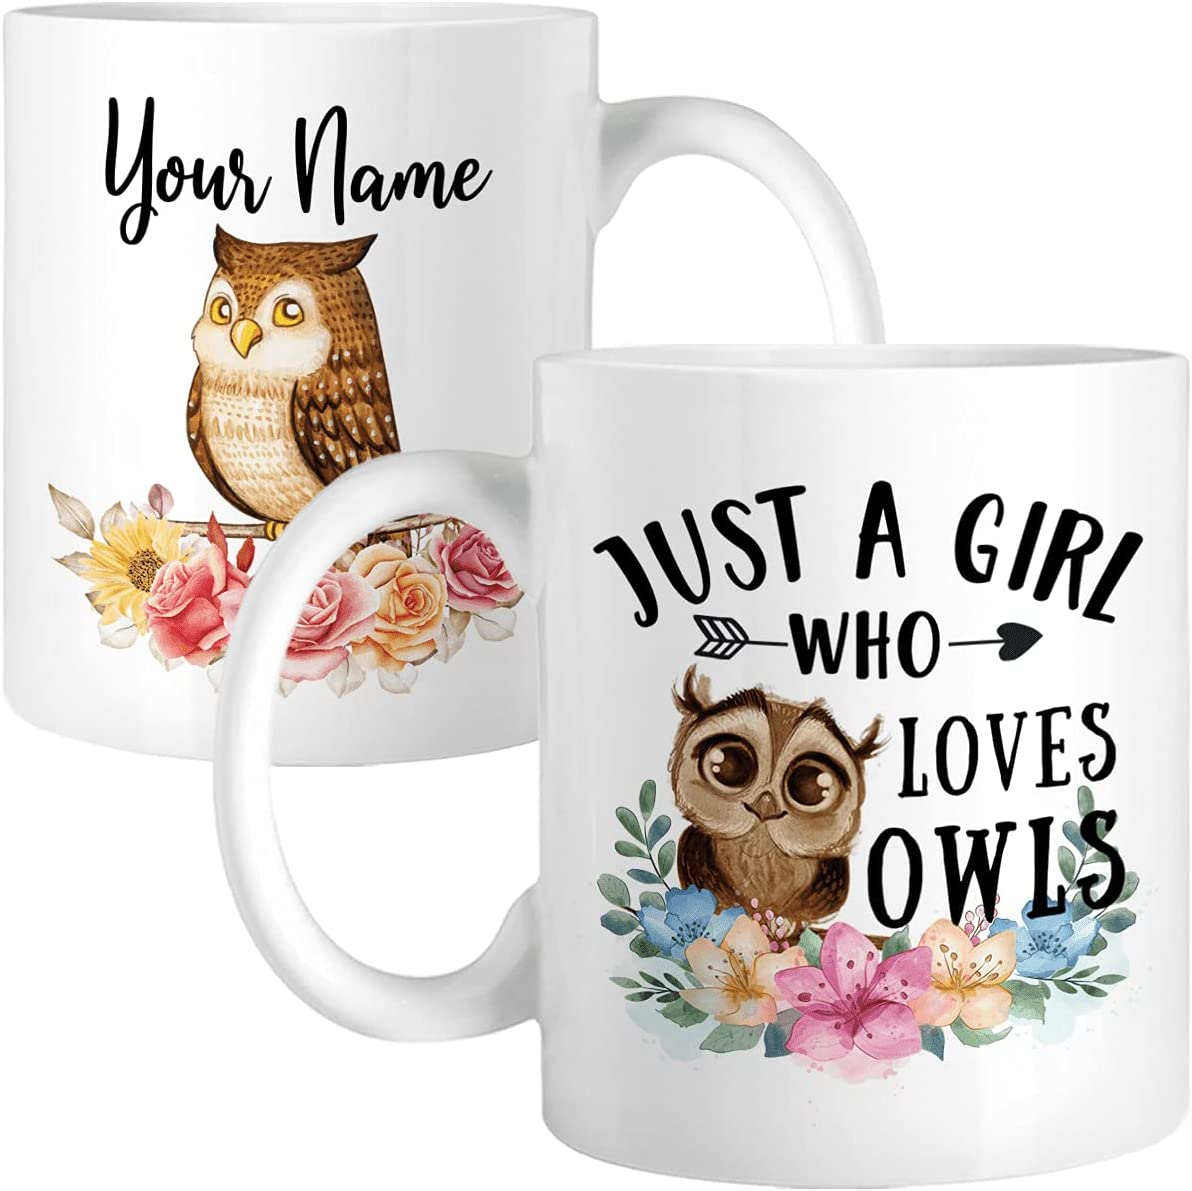 Personalized Coffee Mug For Owl Popular product New York Mall Funnny Wom Gifts Lovers